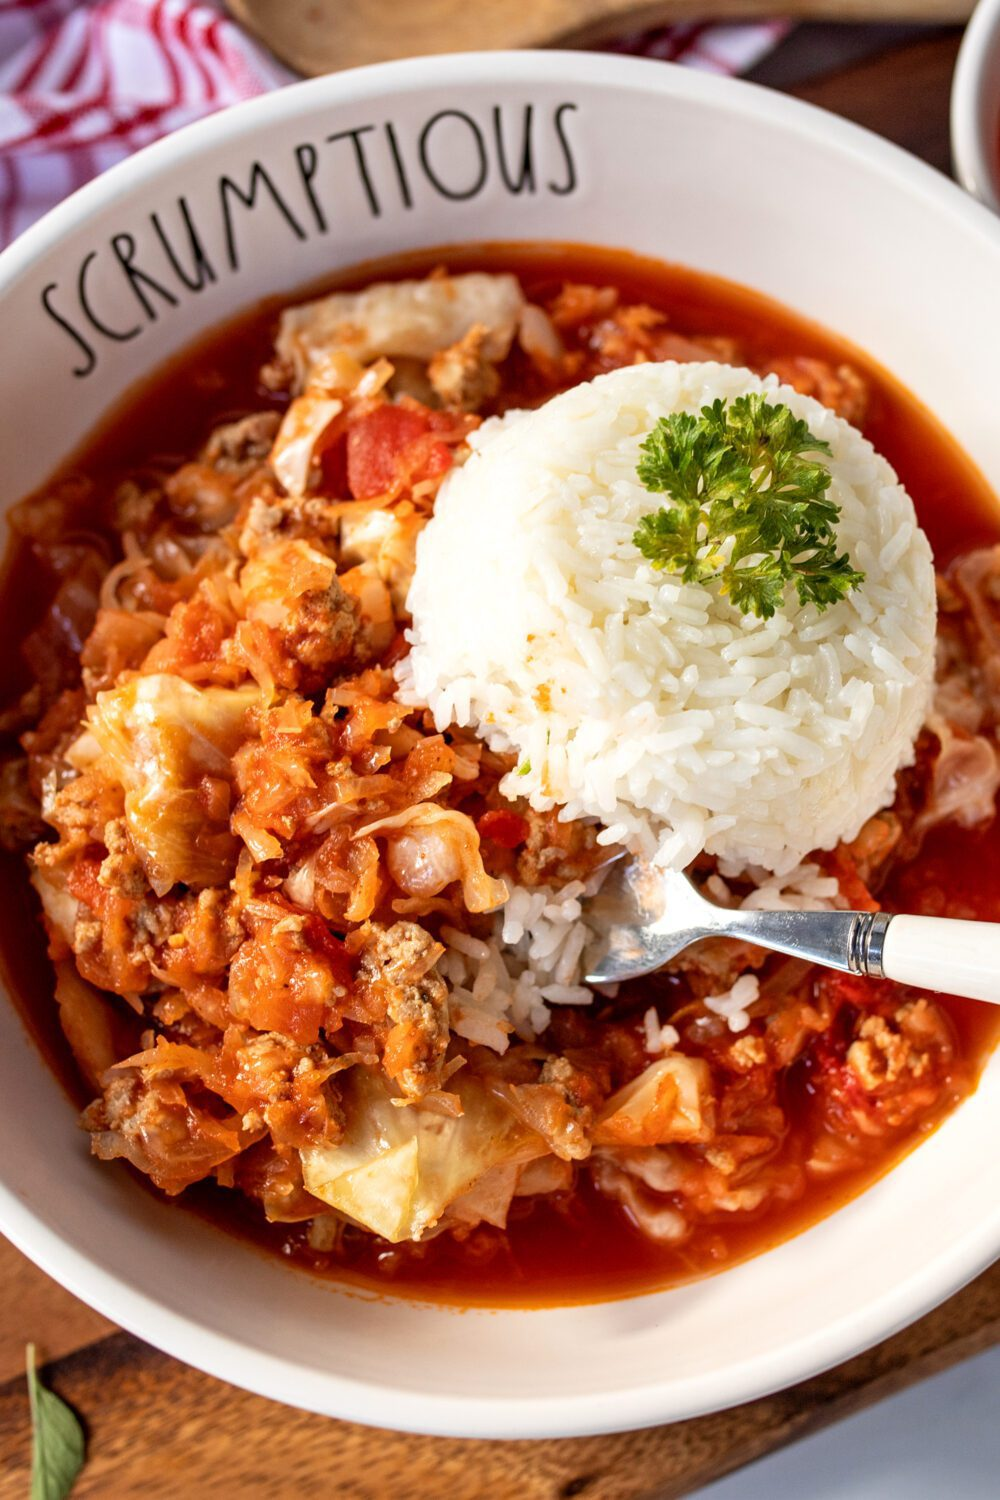 scrumptious rae dunn bowl filled with hungarian stuffed cabbage casserole and rice